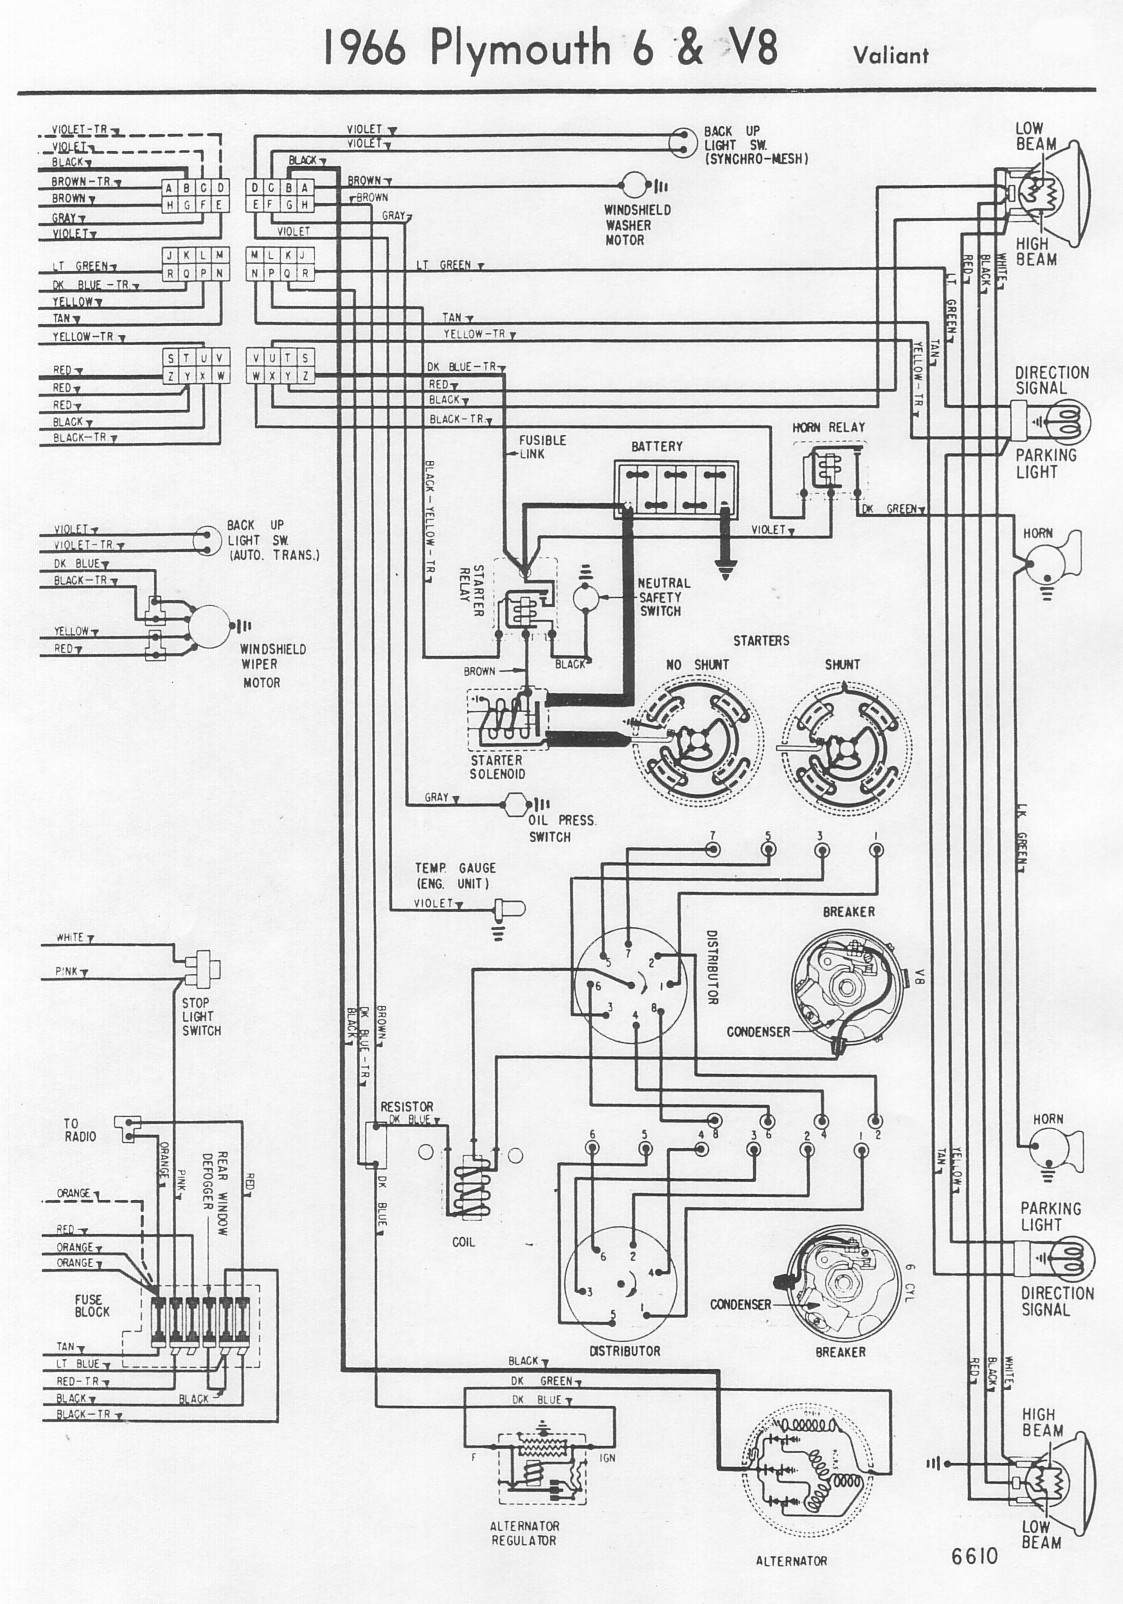 2006 crf50 wiring diagram lancer radio honda crf 50 parts auto